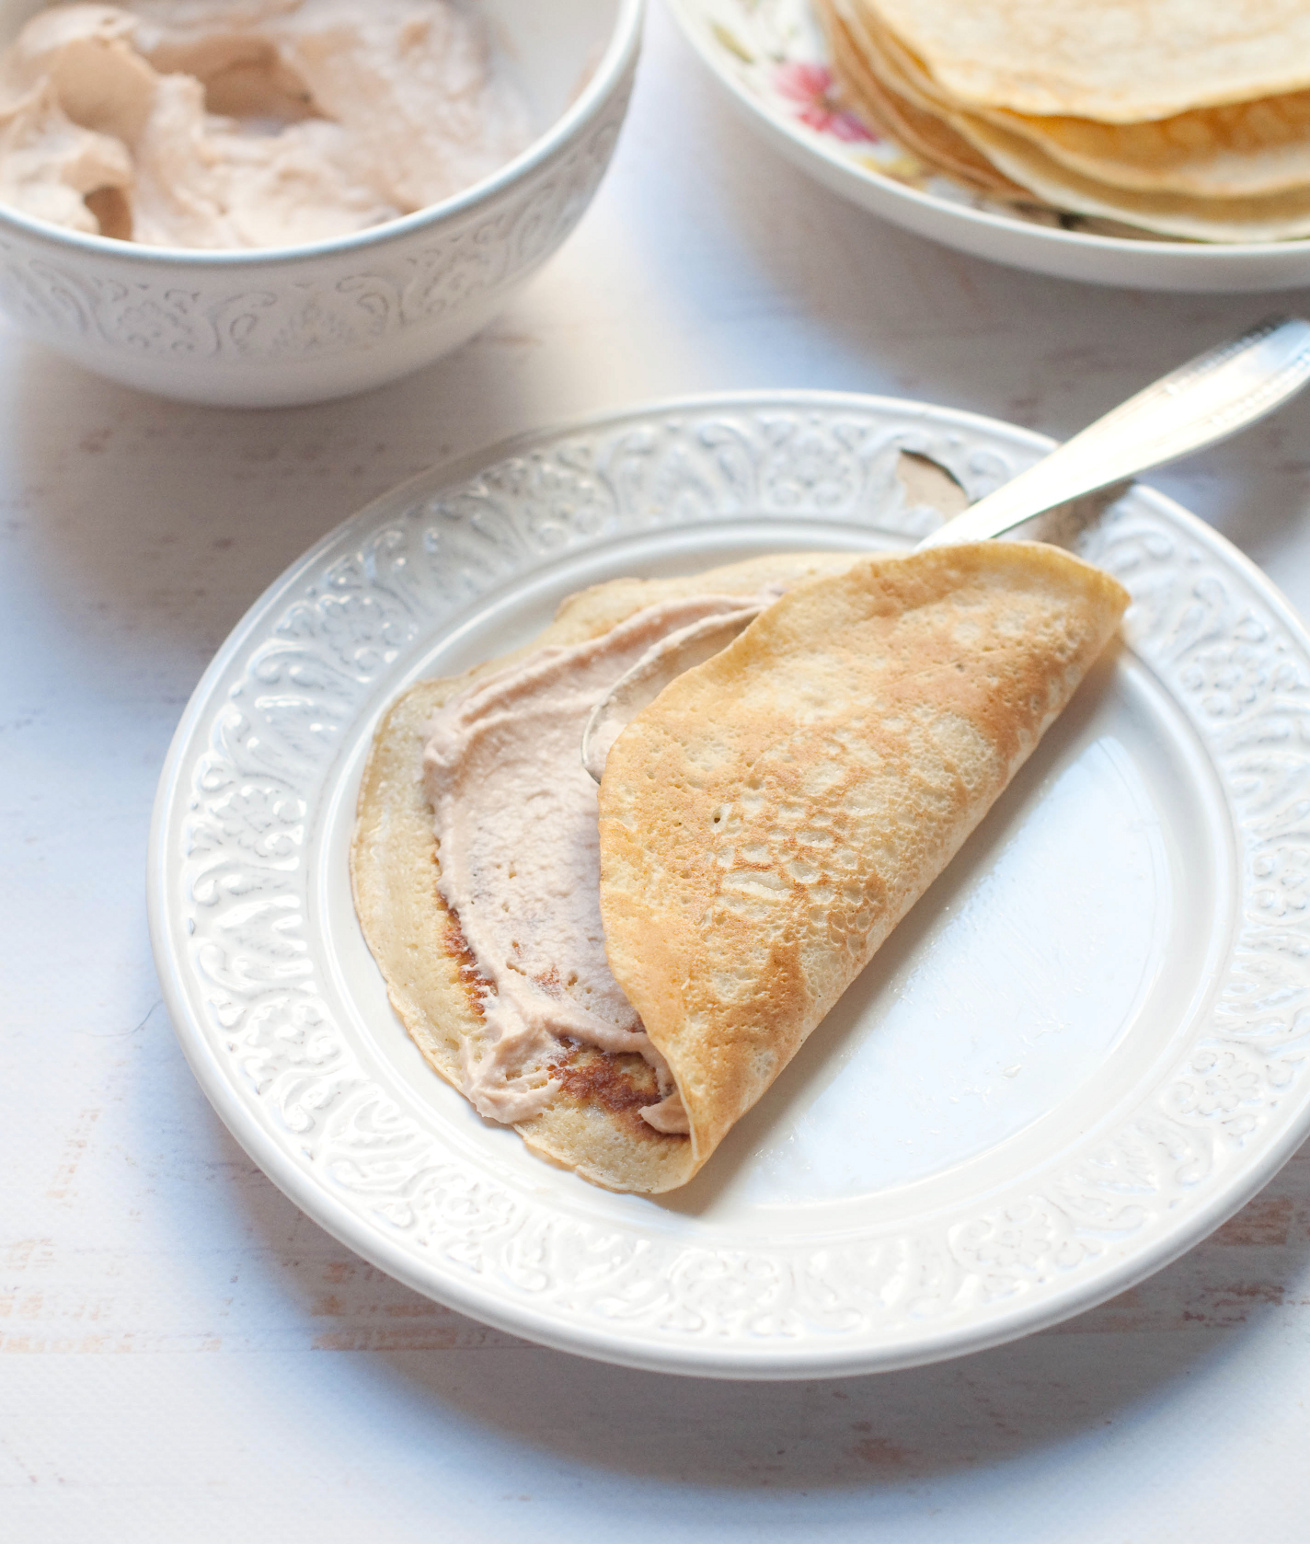 Ricette sulle crepes